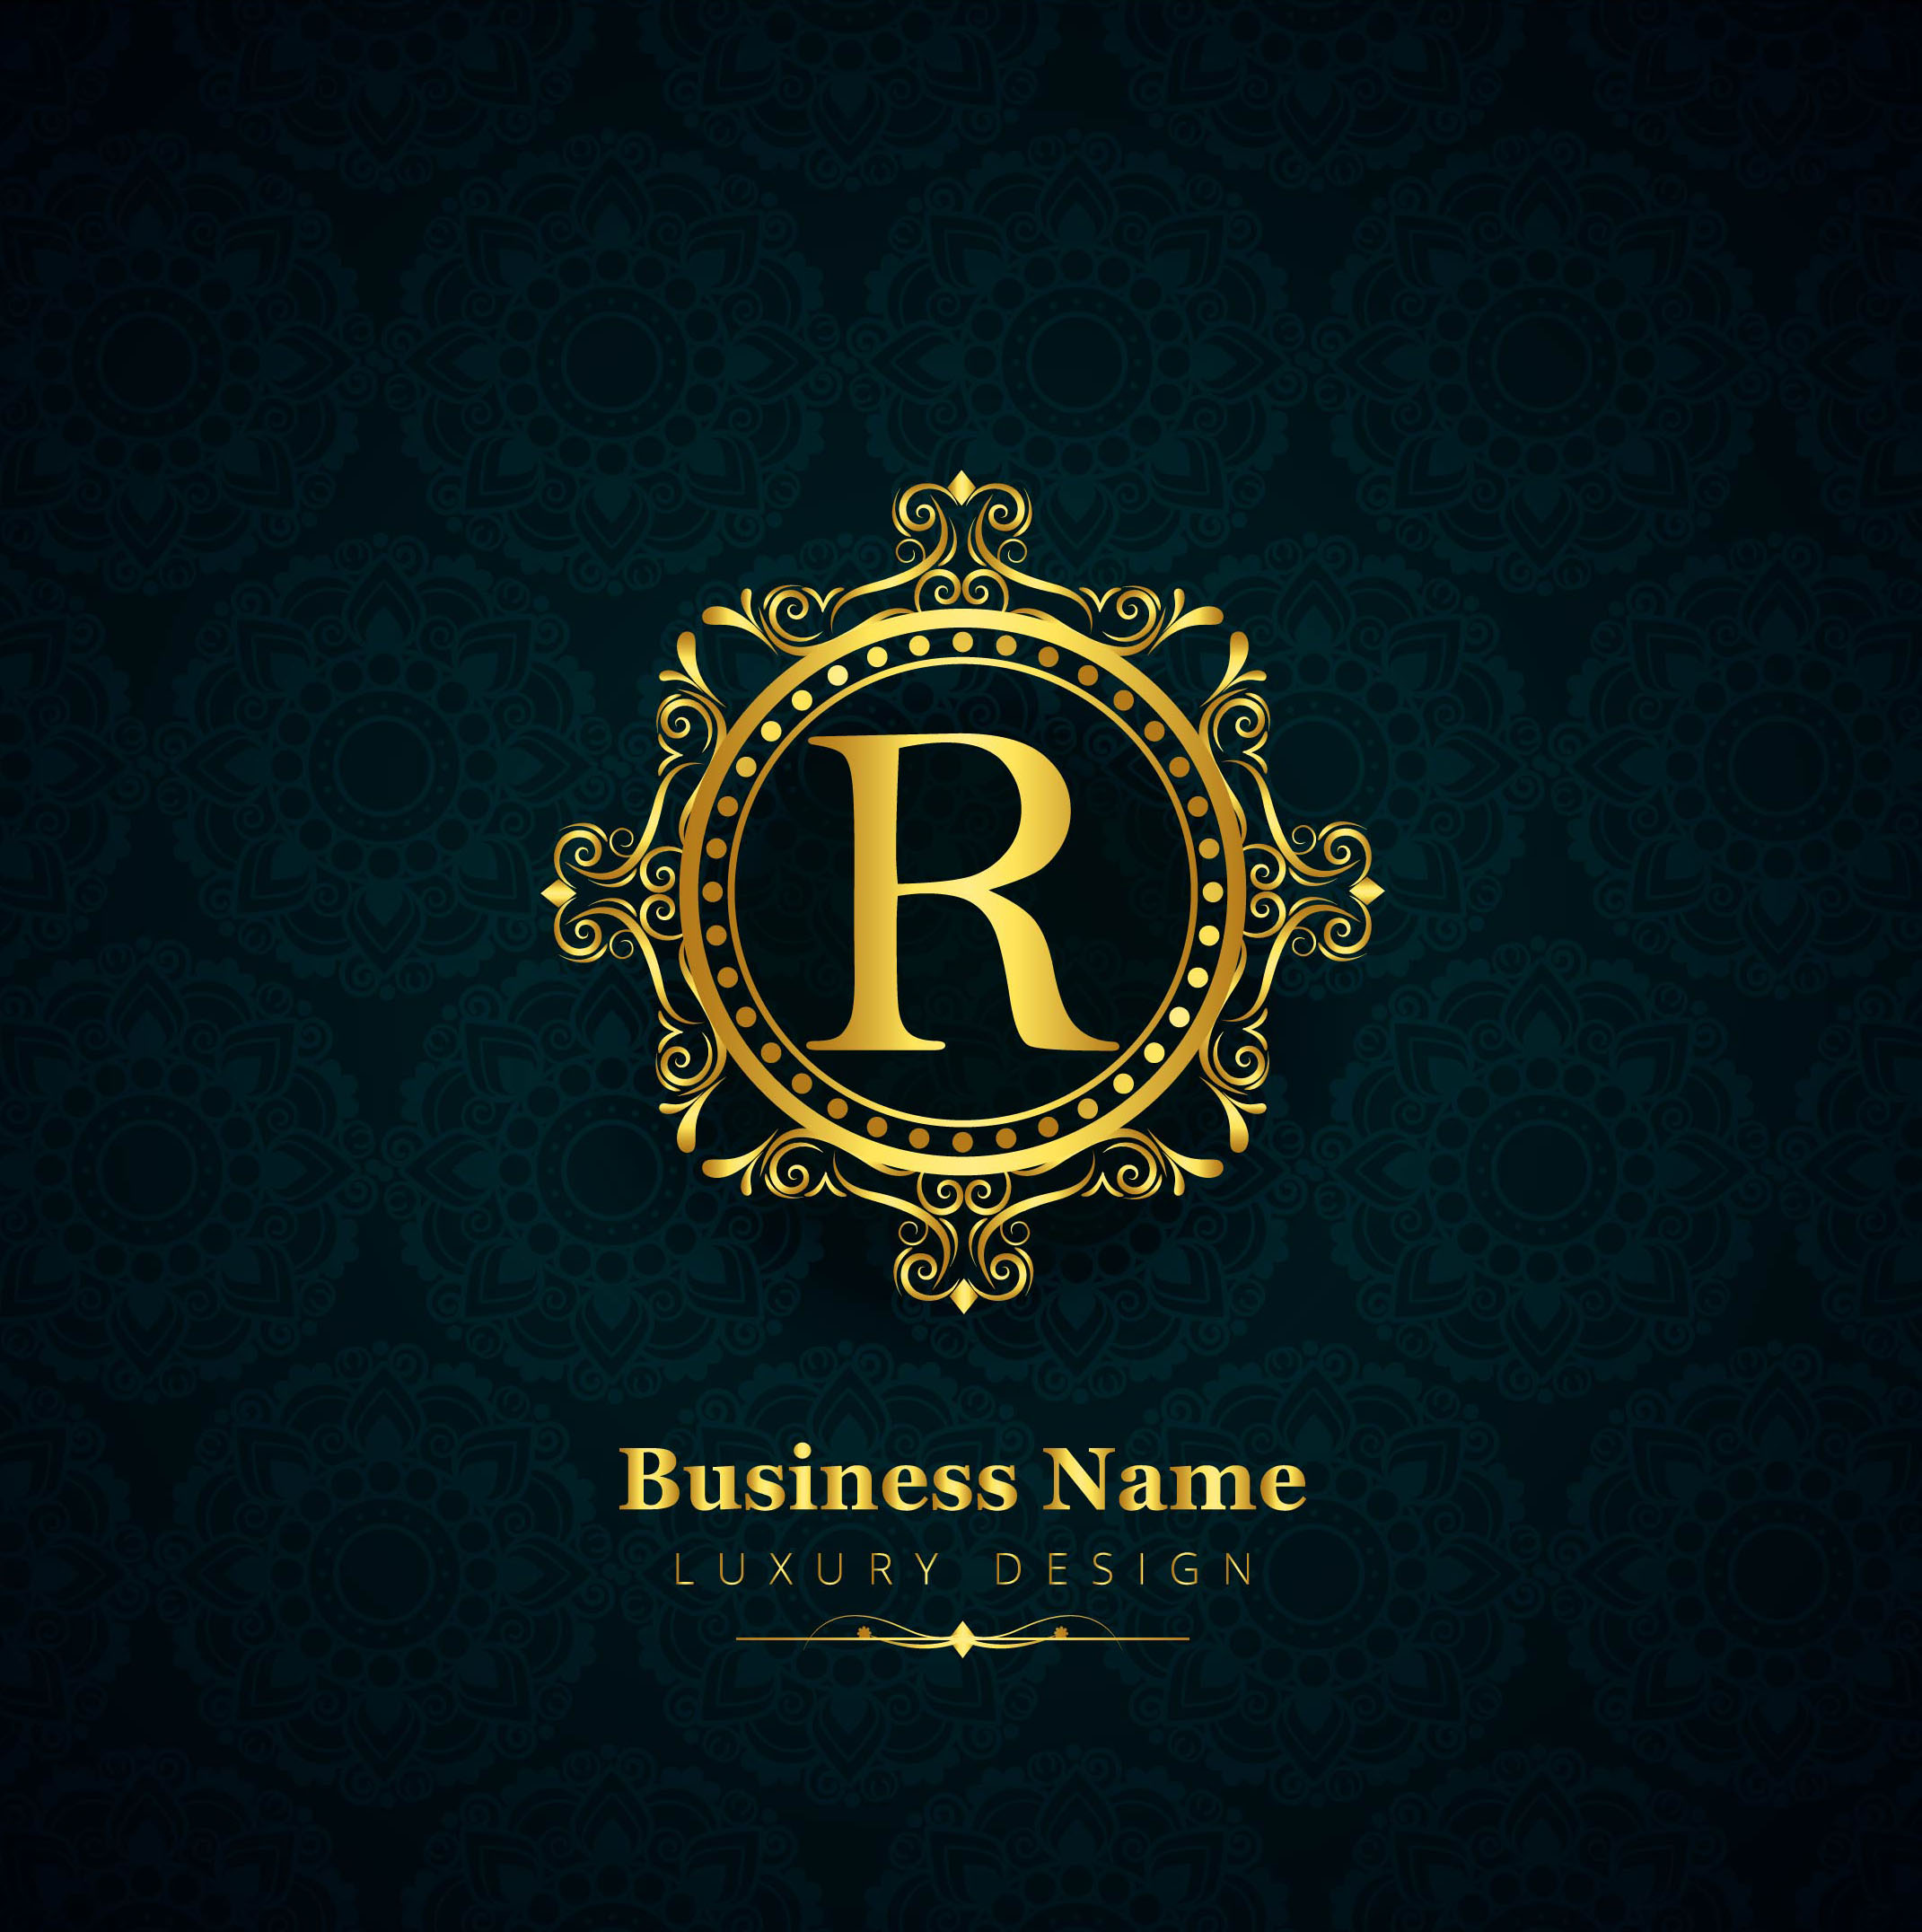 Elegant Ornamental Logo With The Letter S: Luxury Brand Shiny Floral Design Vector